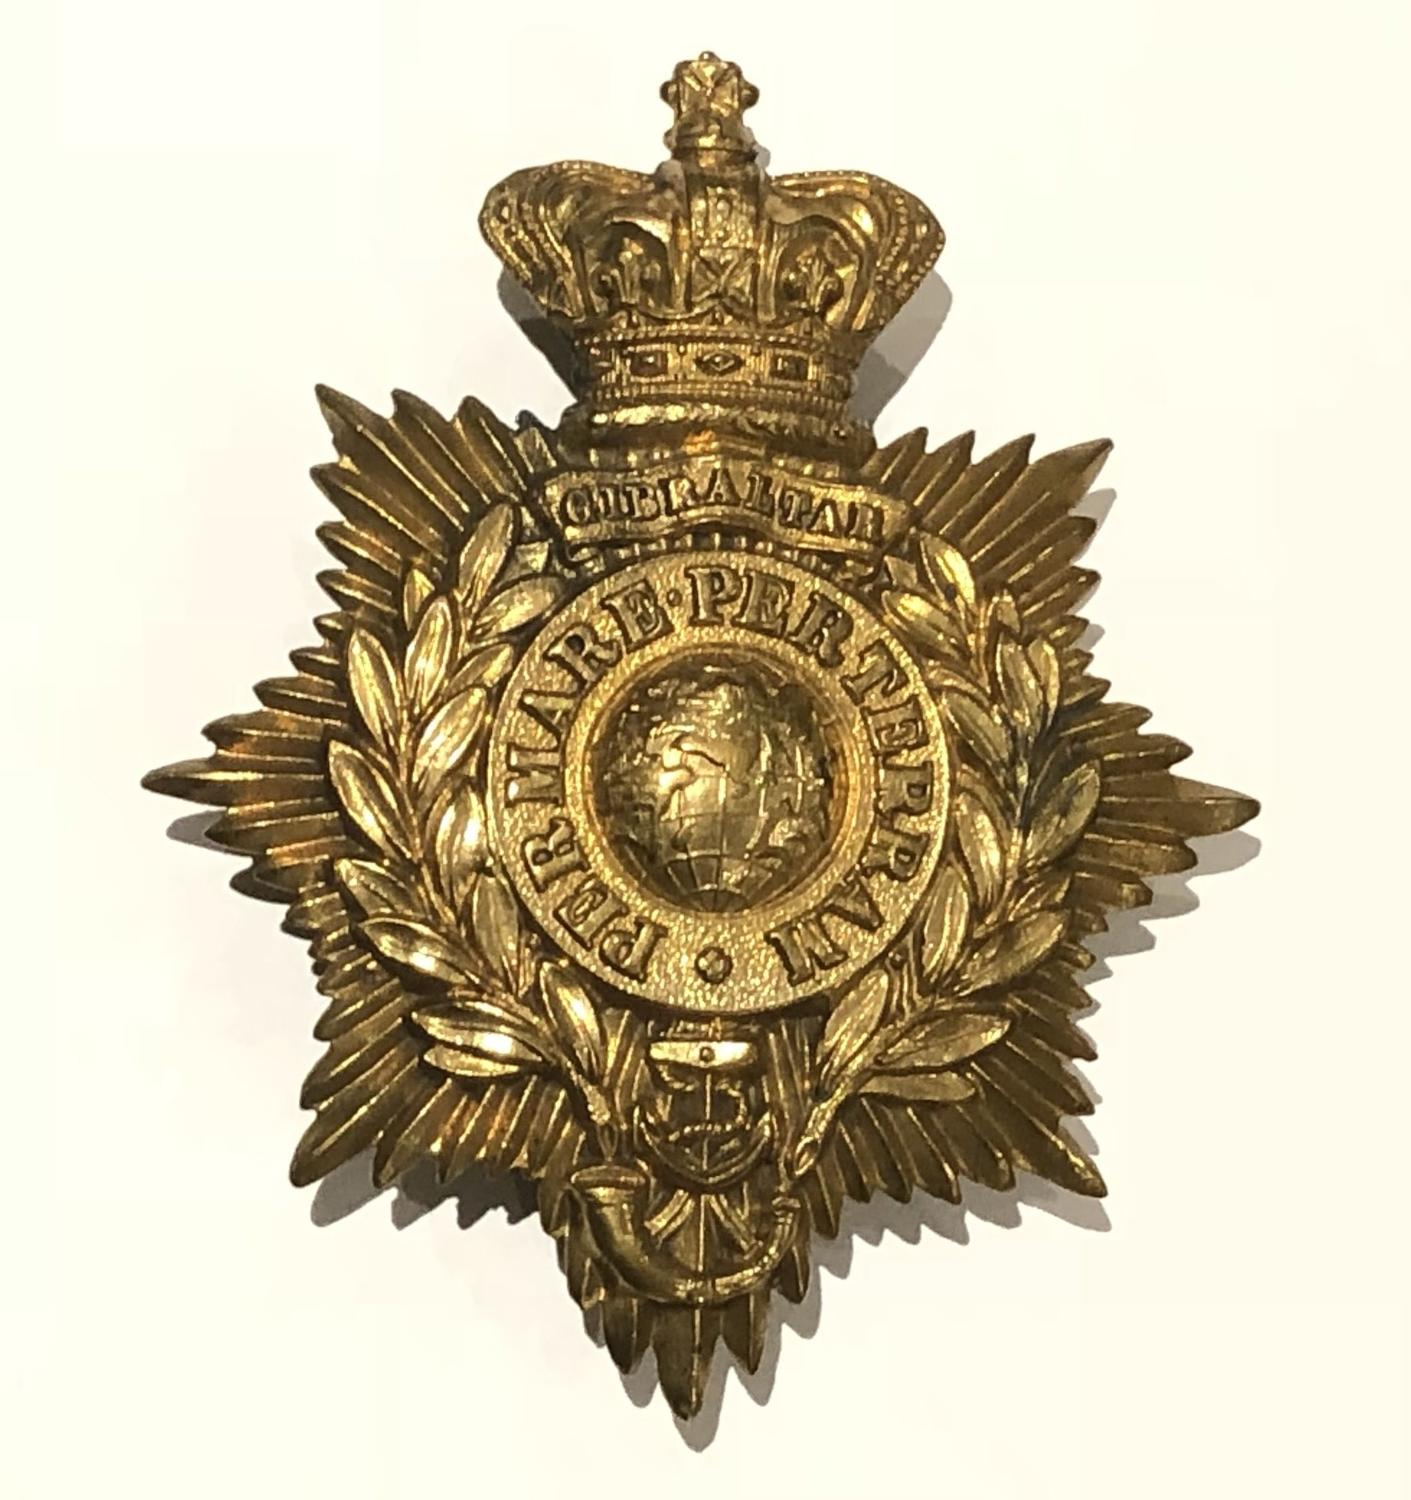 Royal Marine Light Infantry Victorian OR's shako plate circa 1866-78